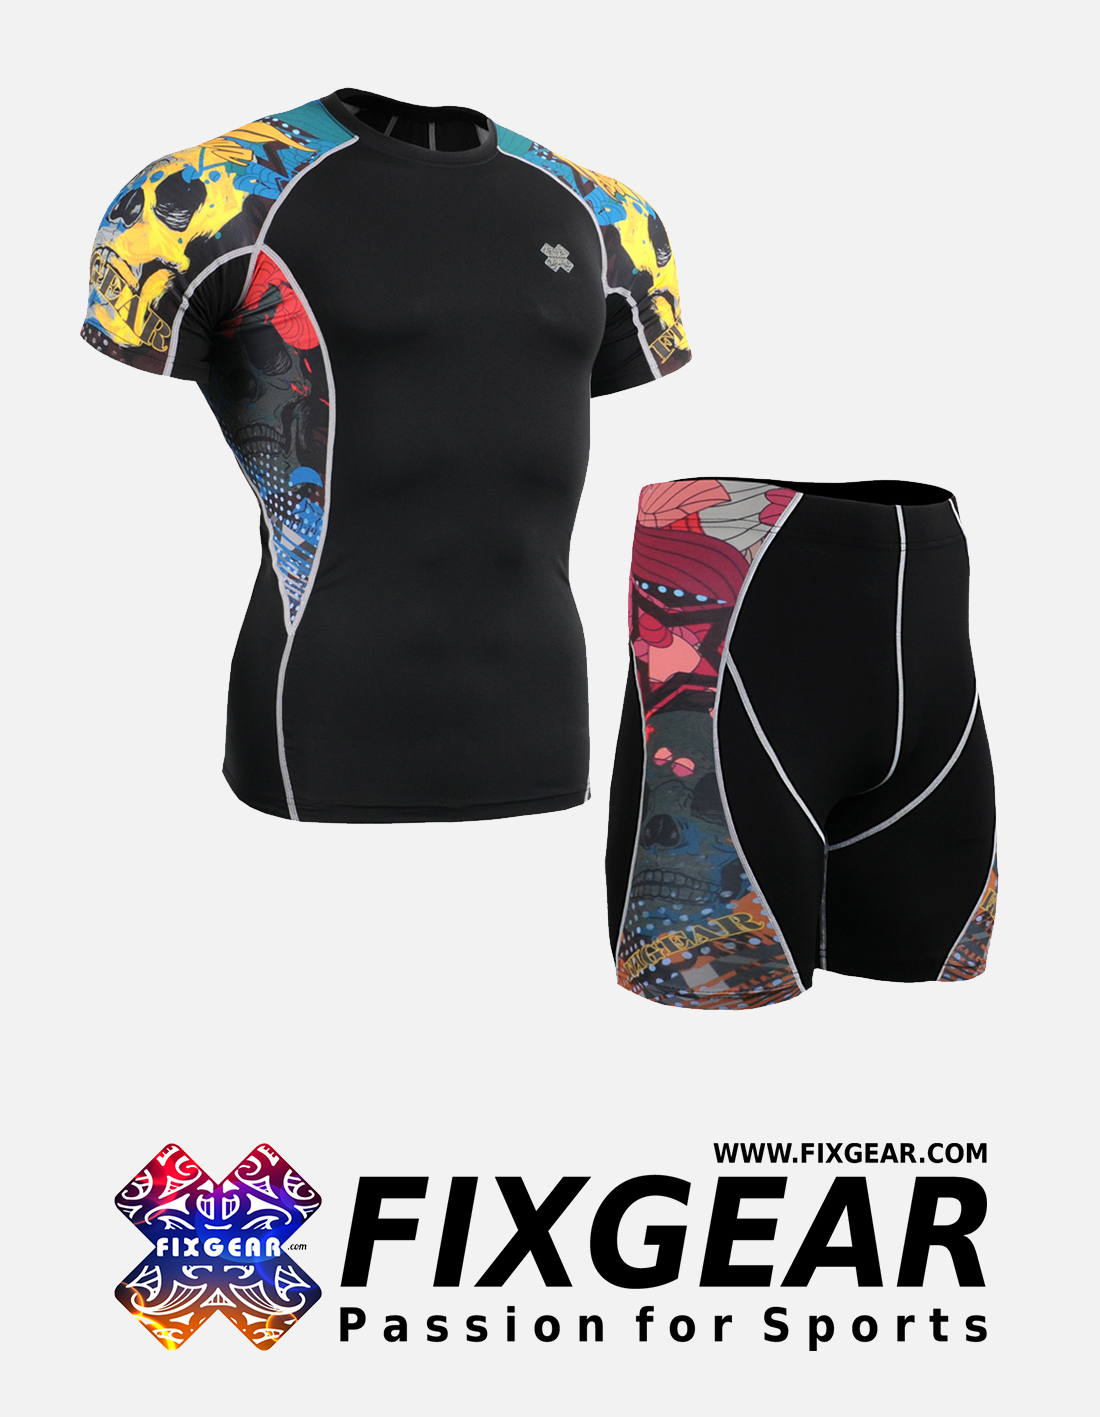 FIXGEAR C2S-P2S-B46 Set Compression Base Layer Shirt & Compression Drawer Shorts